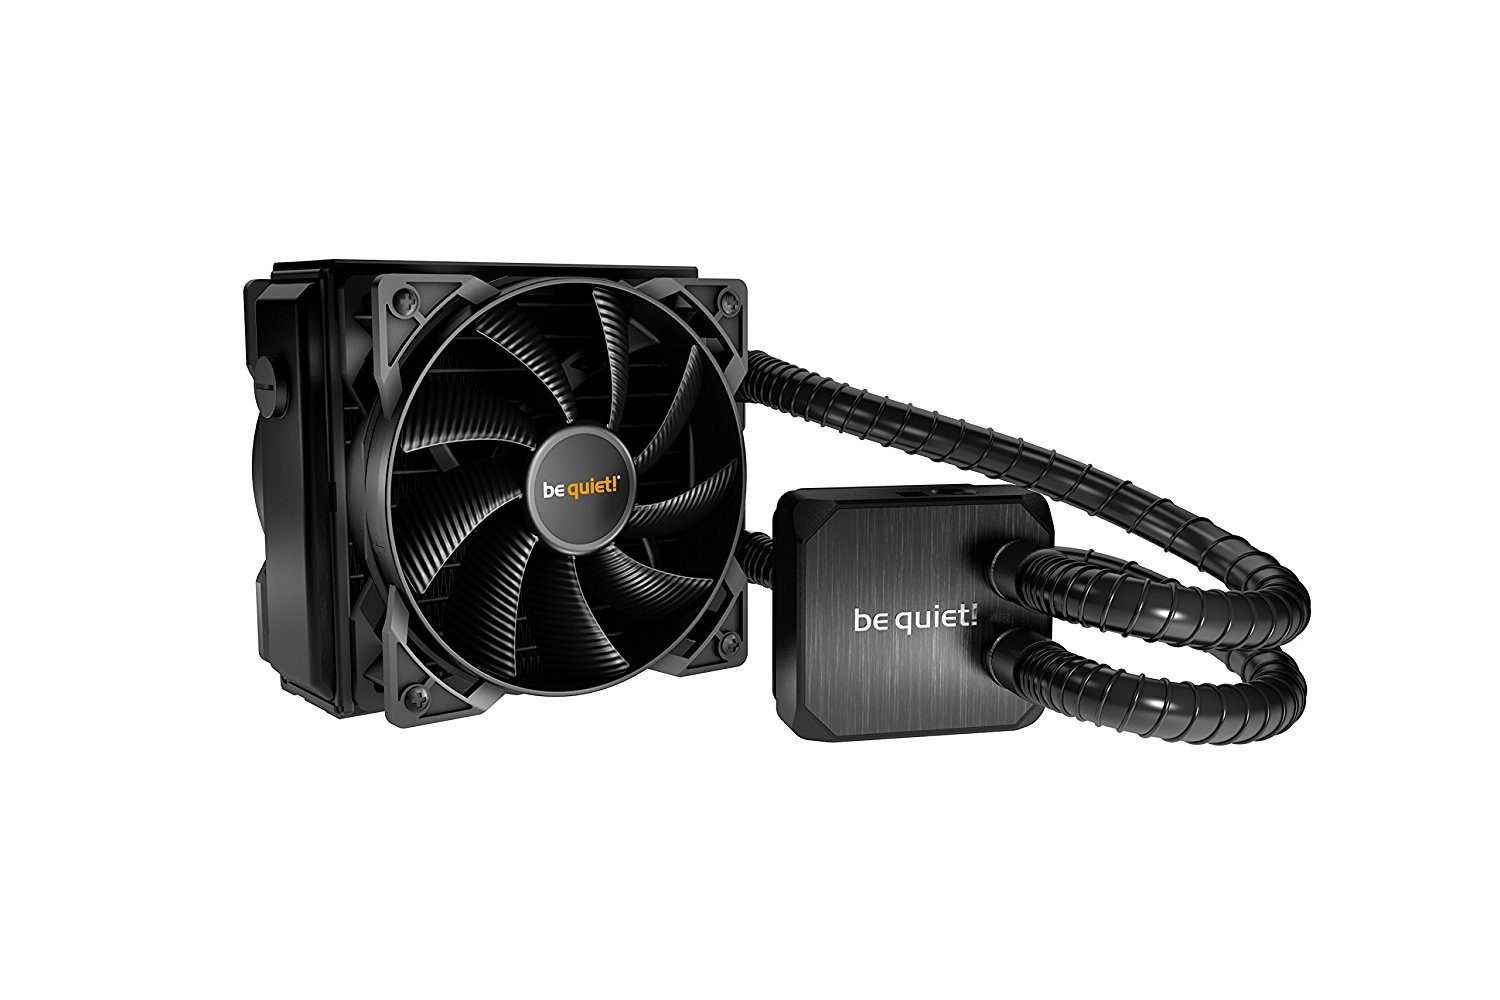 Image 8 : Test : be quiet! Silent Loop 280 mm, le watercooling discret